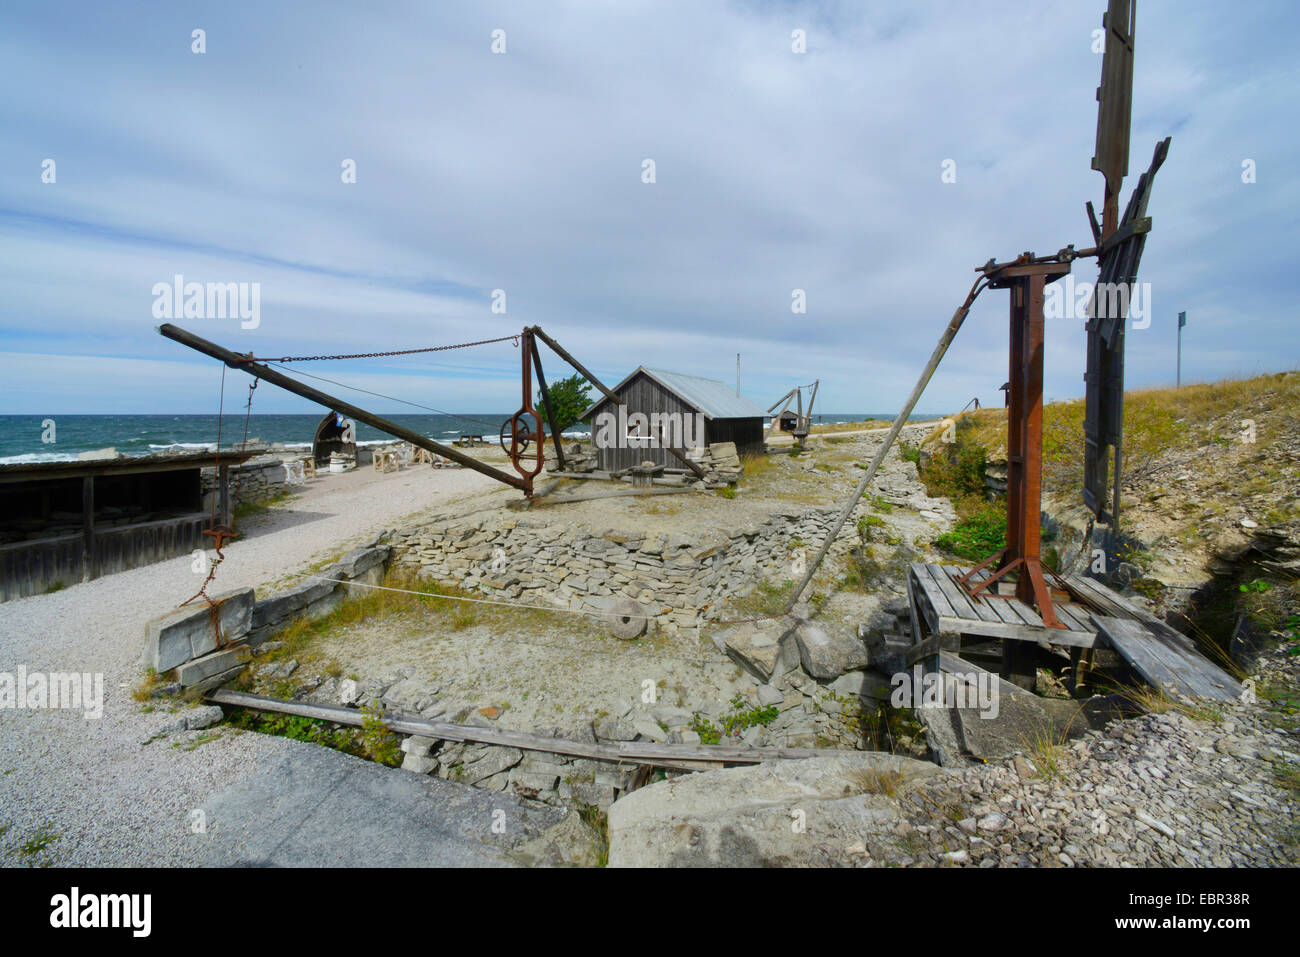 open-air museum sandstone quarries near Kaettelvik, Sweden, Gotland - Stock Image